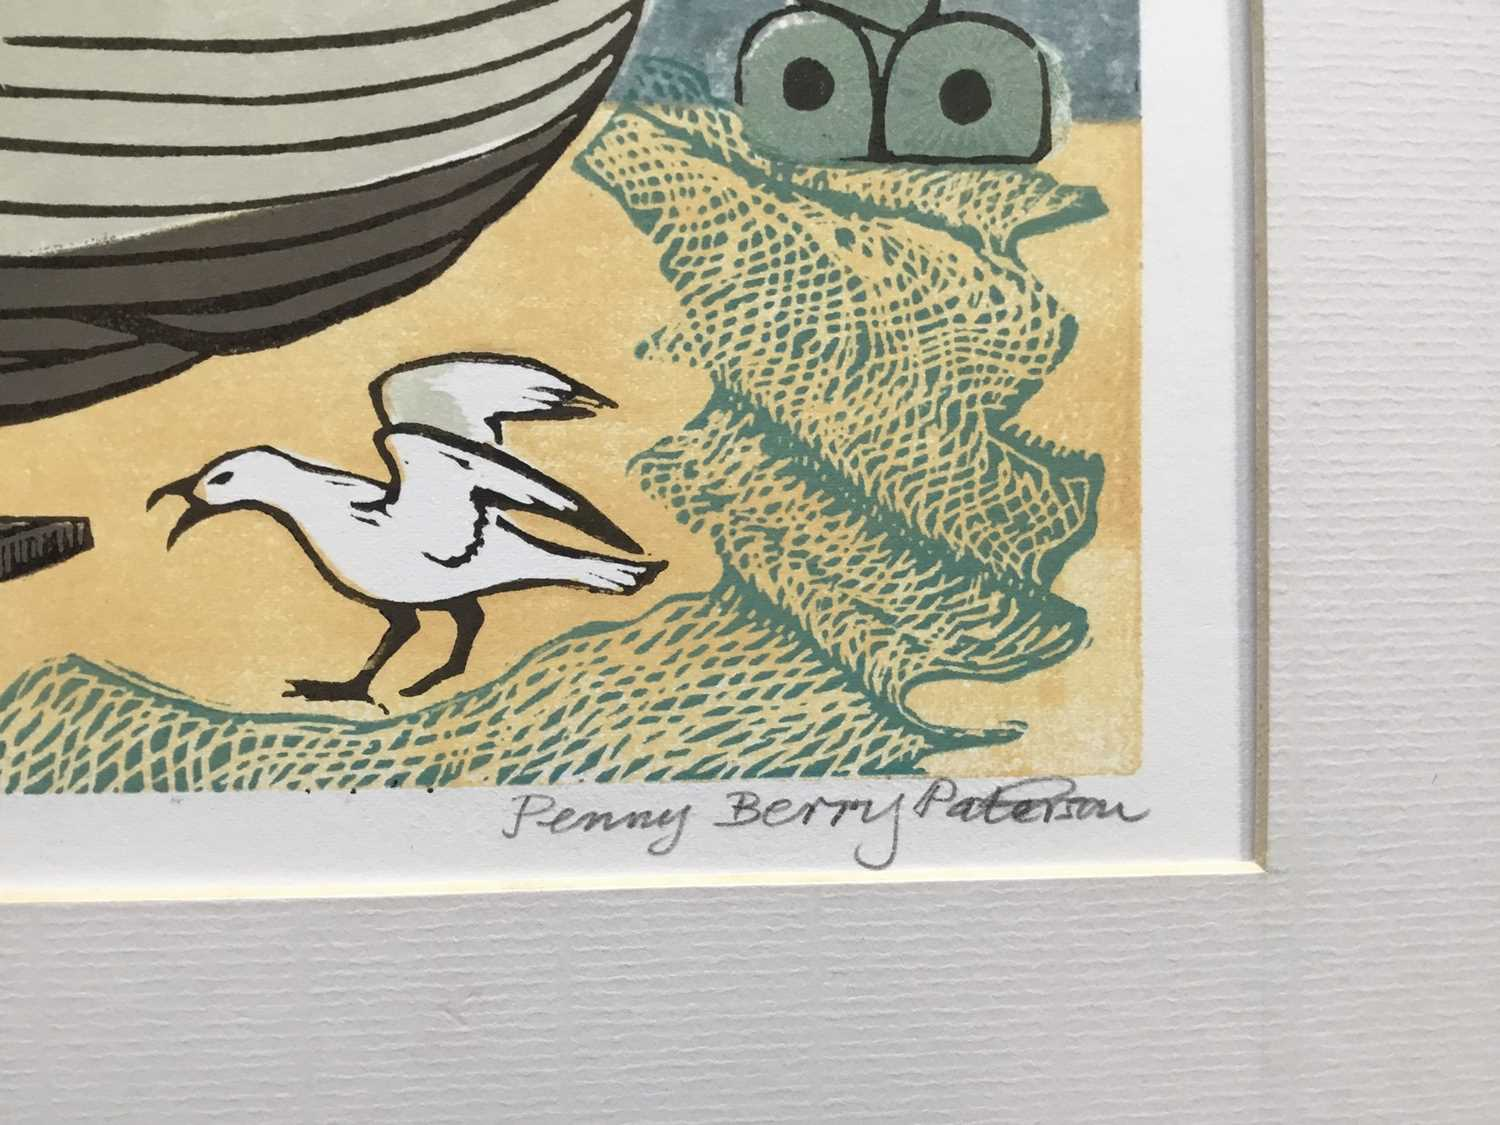 Penny Berry Paterson (1941-2021) colour linocut print, Dropping in for lunch, signed and numbered 2/ - Image 2 of 3